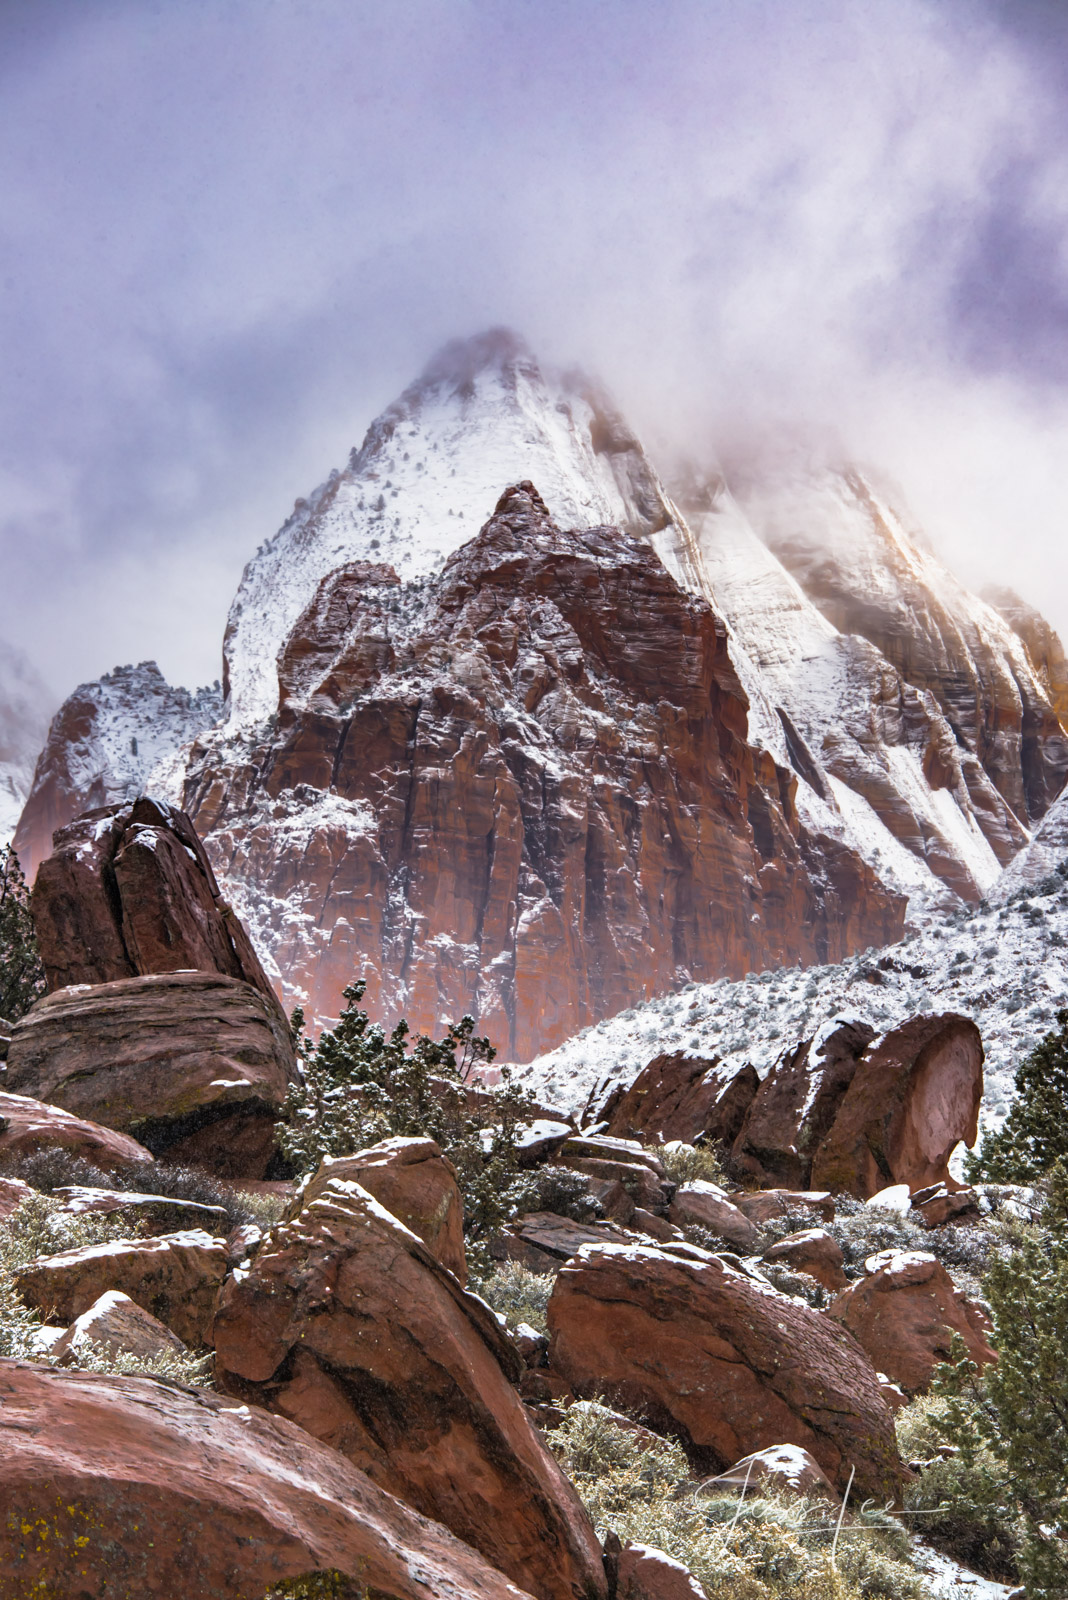 Limited Edition of 50 Exclusive high-resolution Museum Quality Fine Art Photography Prints of a storm break in Red Rocks Country...